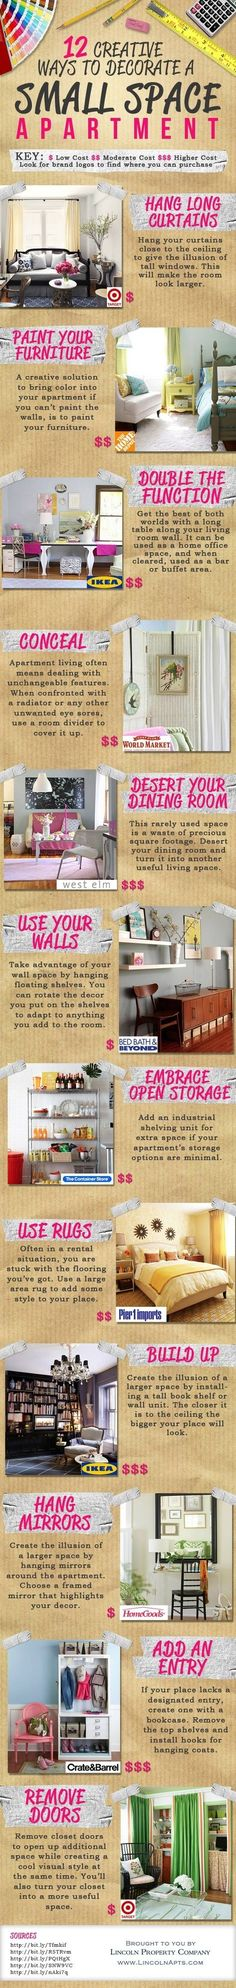 Small Space Decorating ideas  #journey